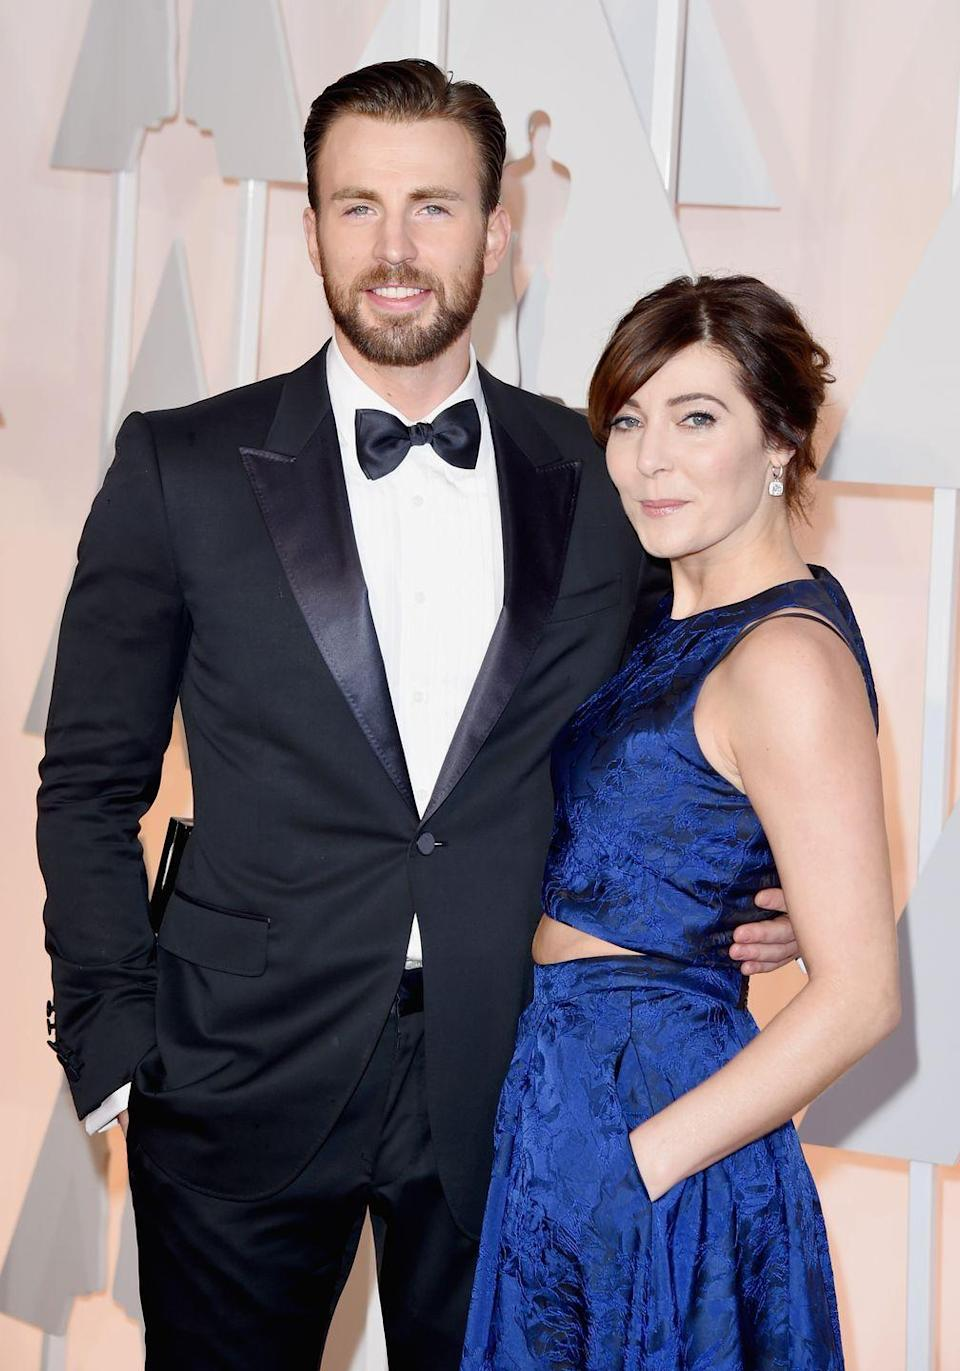 """<p>When Chris Evans walked the 2015 Oscars red carpet with a mystery woman, rumors flew about his relationship status. But during an interview with Robin Roberts, <a href=""""https://www.eonline.com/news/628821/chris-evans-oscars-date-was-his-best-friend-not-his-girlfriend-watch-the-funny-video-clip"""" rel=""""nofollow noopener"""" target=""""_blank"""" data-ylk=""""slk:Chris clarified"""" class=""""link rapid-noclick-resp"""">Chris clarified</a> that his date was none other than childhood best friend Tara Testa. Since then, Tara accompanied Chris and his brother Scott at the <a href=""""https://www.pinterest.com/pin/223983781455041882/?nic_v1=1aKqTPmWhVZvbVZ%2Bh2mx3Wr1tFY%2BTNROPHbNdjCh9Ke1yujYrYuBSiJwCywrgxmPeU"""" rel=""""nofollow noopener"""" target=""""_blank"""" data-ylk=""""slk:2019 Vanity Fair Oscars party"""" class=""""link rapid-noclick-resp"""">2019 <em>Vanity Fair </em>Oscars party</a>. The internet also managed to <a href=""""https://twitter.com/ifcapdiesidie/status/1235703725945057280?lang=en"""" rel=""""nofollow noopener"""" target=""""_blank"""" data-ylk=""""slk:find photos"""" class=""""link rapid-noclick-resp"""">find photos</a> of Chris and Tara's friendship from over the years.</p>"""